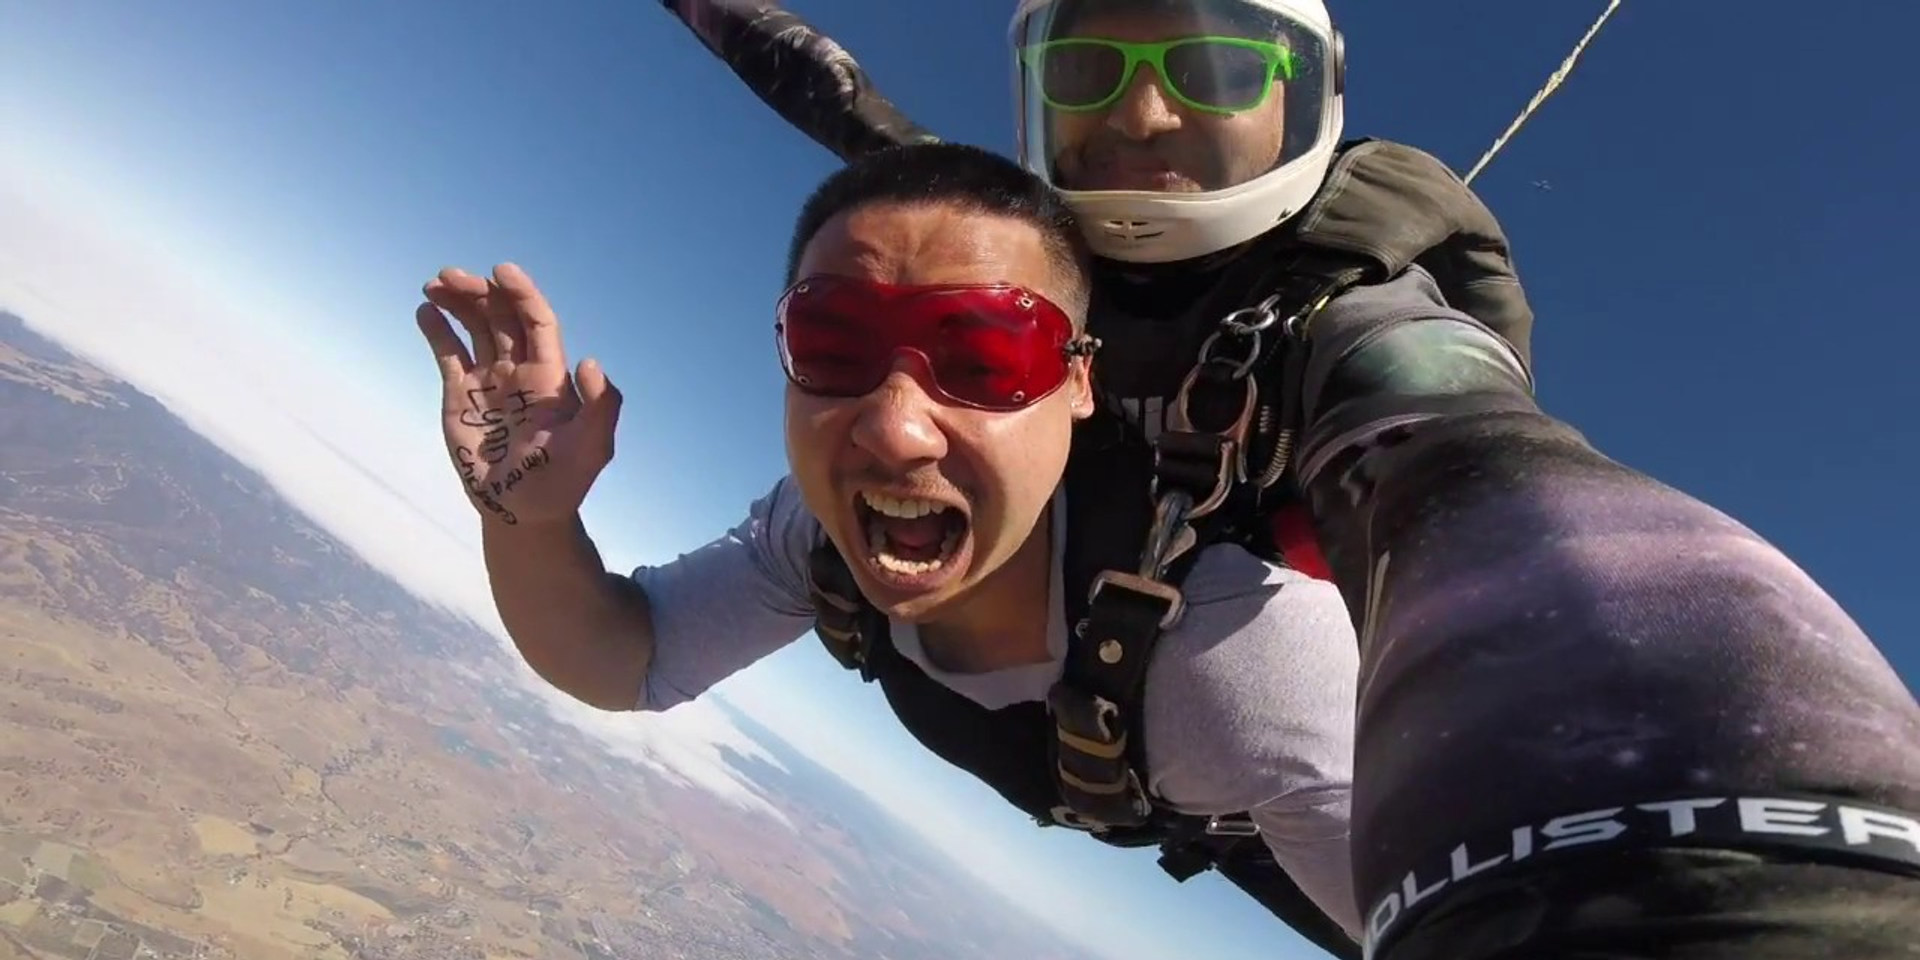 Skydive Hollister Jumps July 13 to 16 2018   SF Bay Area Skydiving California   Tandem, Experienced, AFF